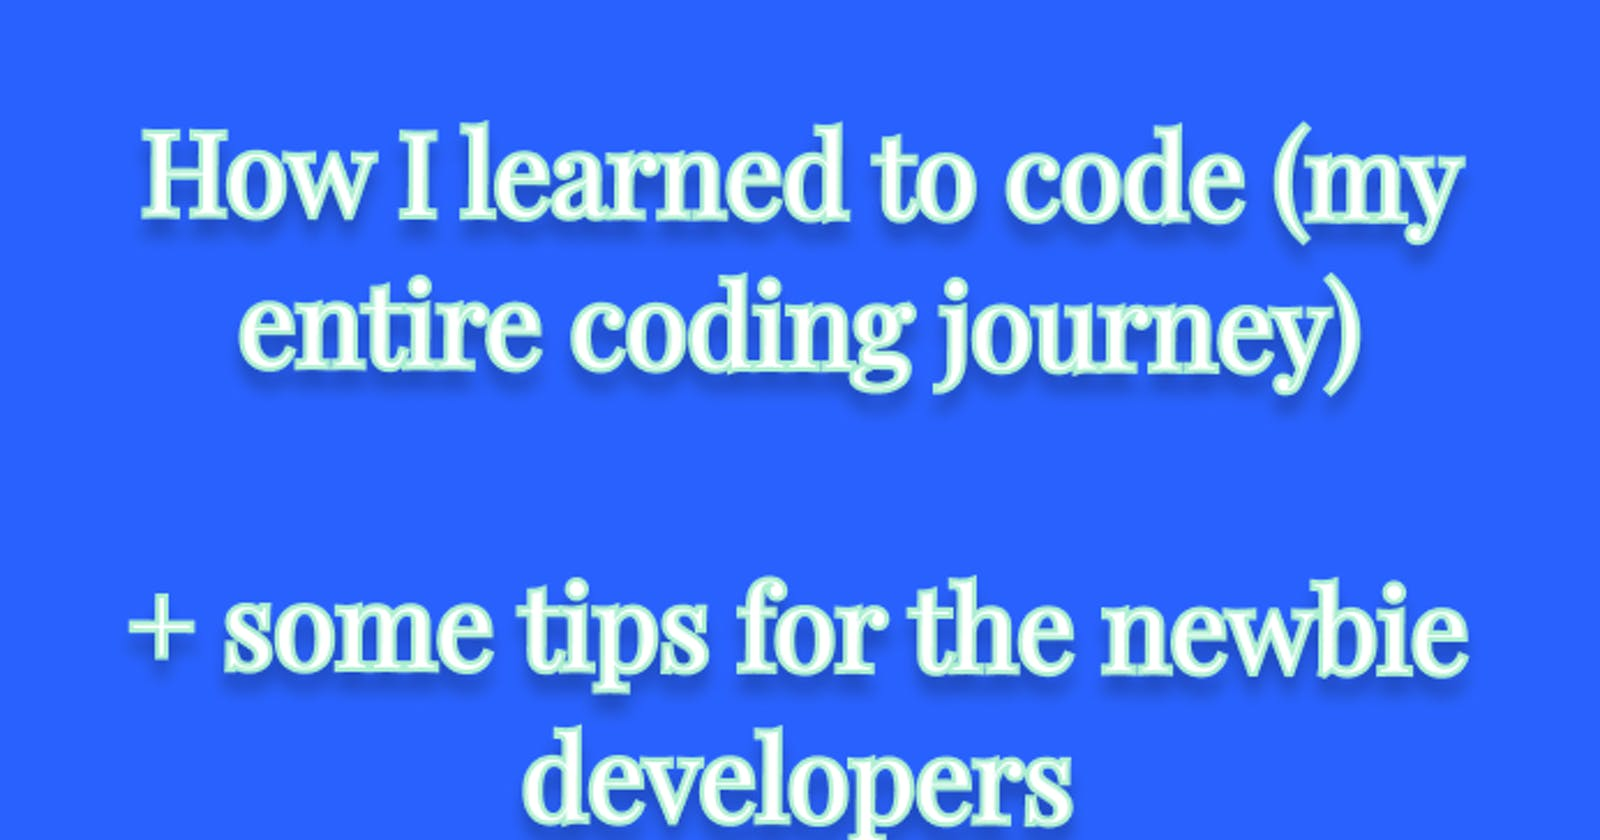 How I learned to code (my entire coding journey) + some tips for the newbie developers